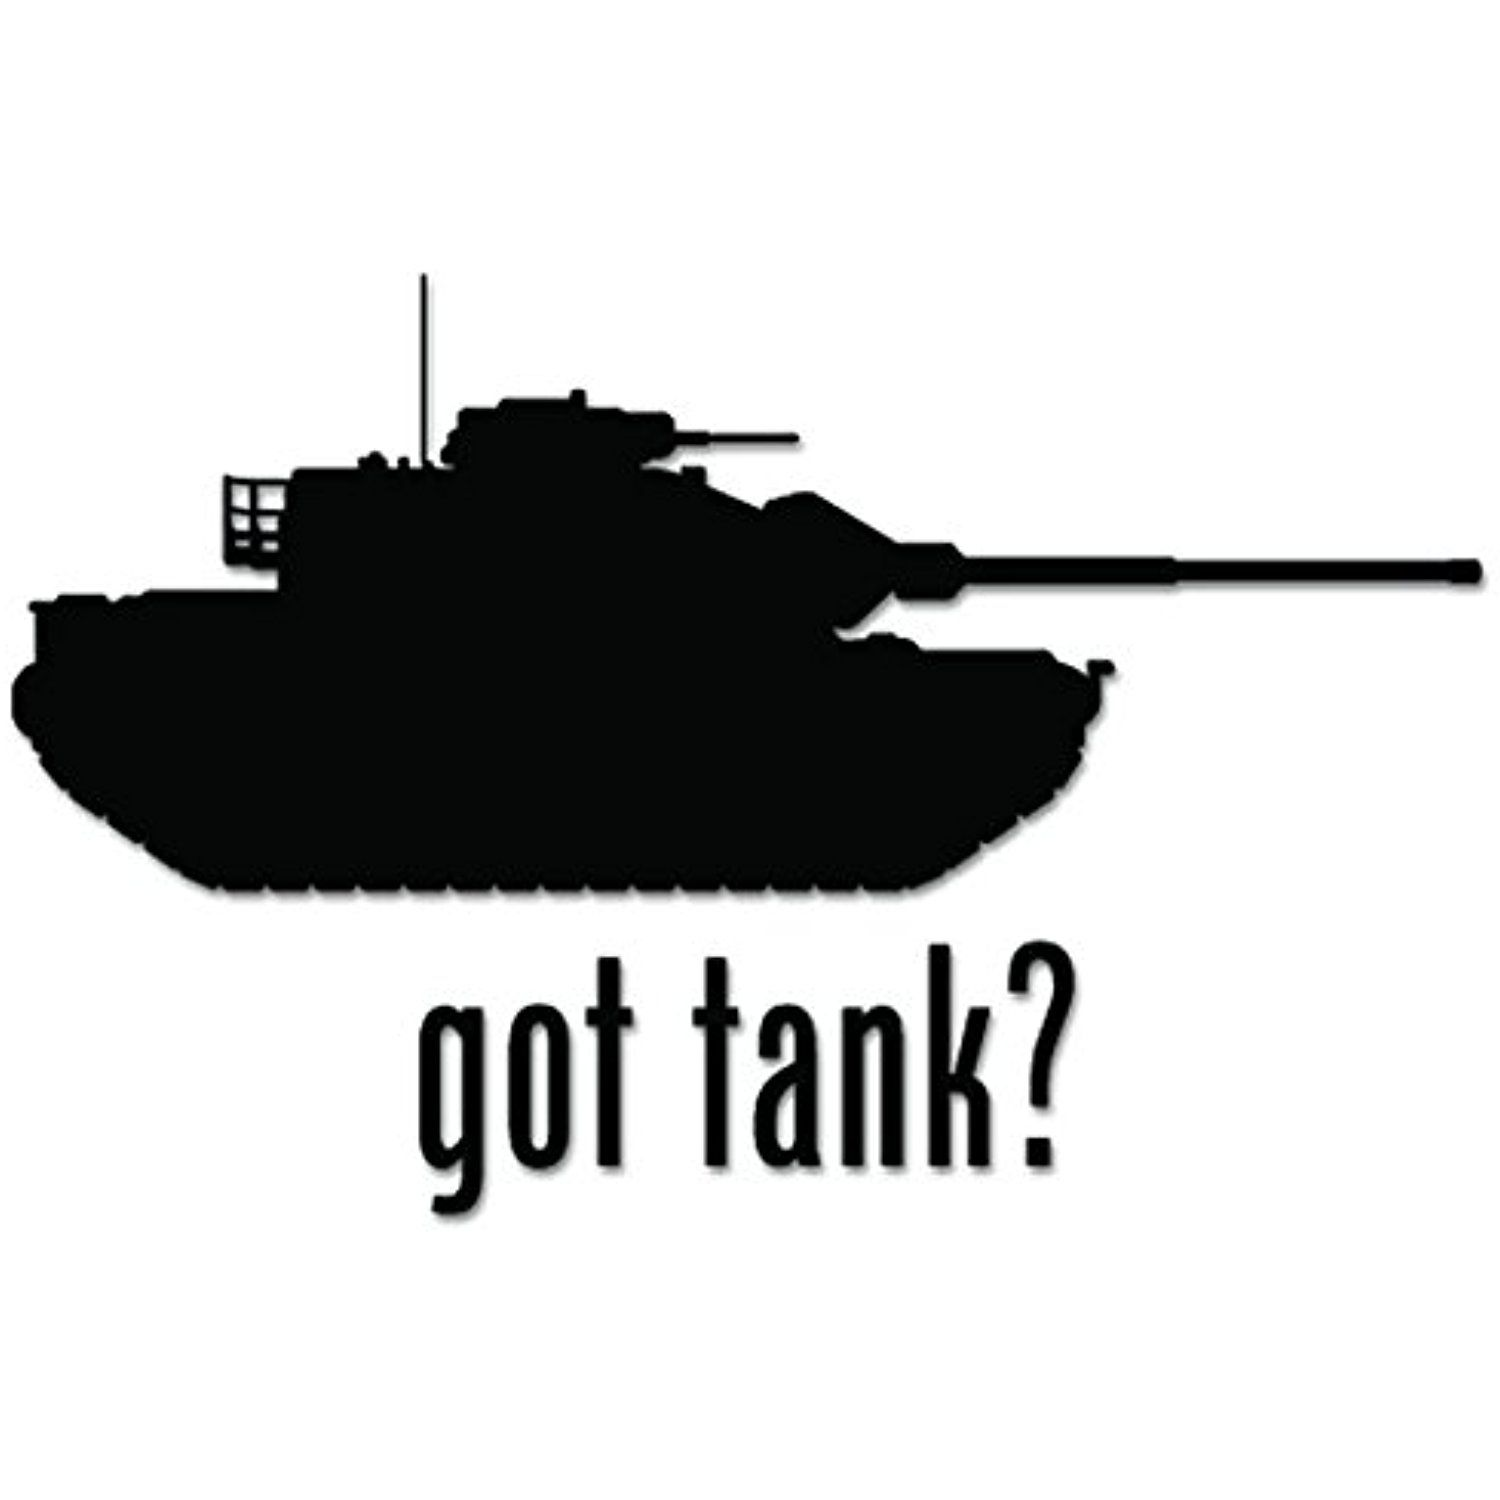 Got Tank Military Army Vinyl Decal Sticker For Vehicle Car Truck Window Bumper Wall Decor - [6 inch/15 cm Wide] - Matte WHITE Color ** Find out more about the great product at the image link. (This is an affiliate link) #WallStickersMurals